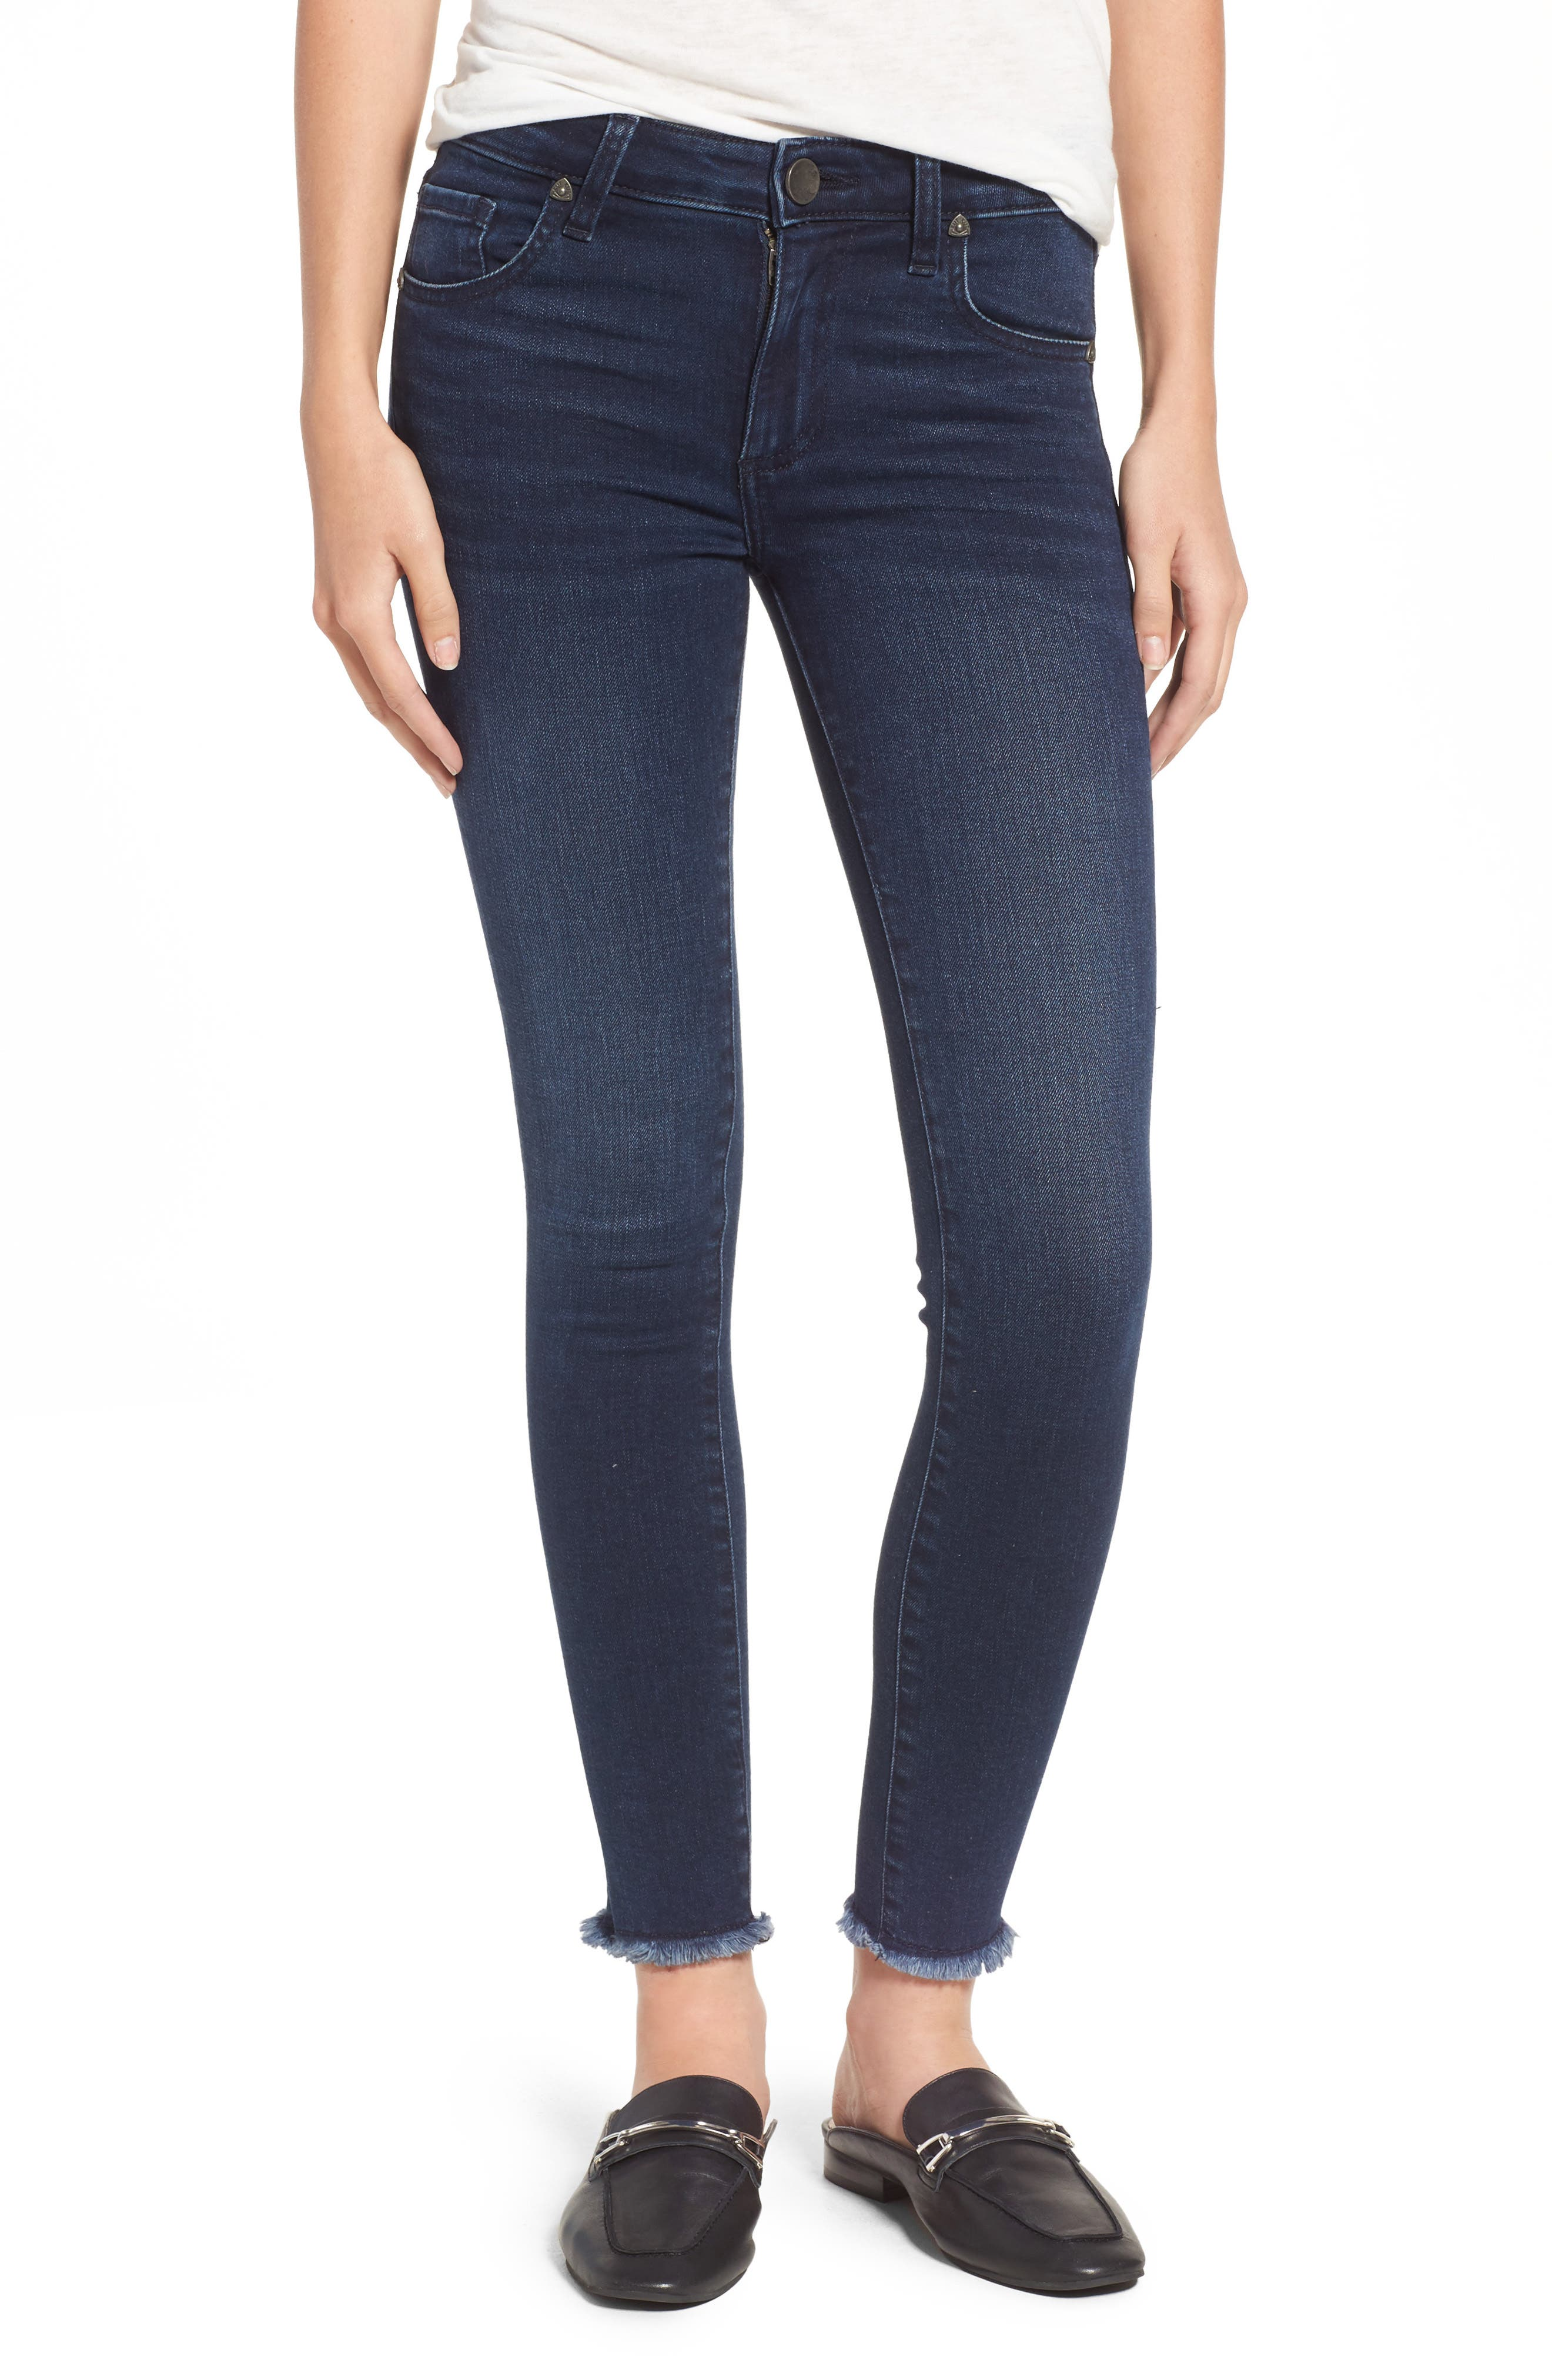 Alternate Image 1 Selected - KUT from the Kloth Connie Skinny Ankle Jeans (Bloomed) (Regular & Petite)